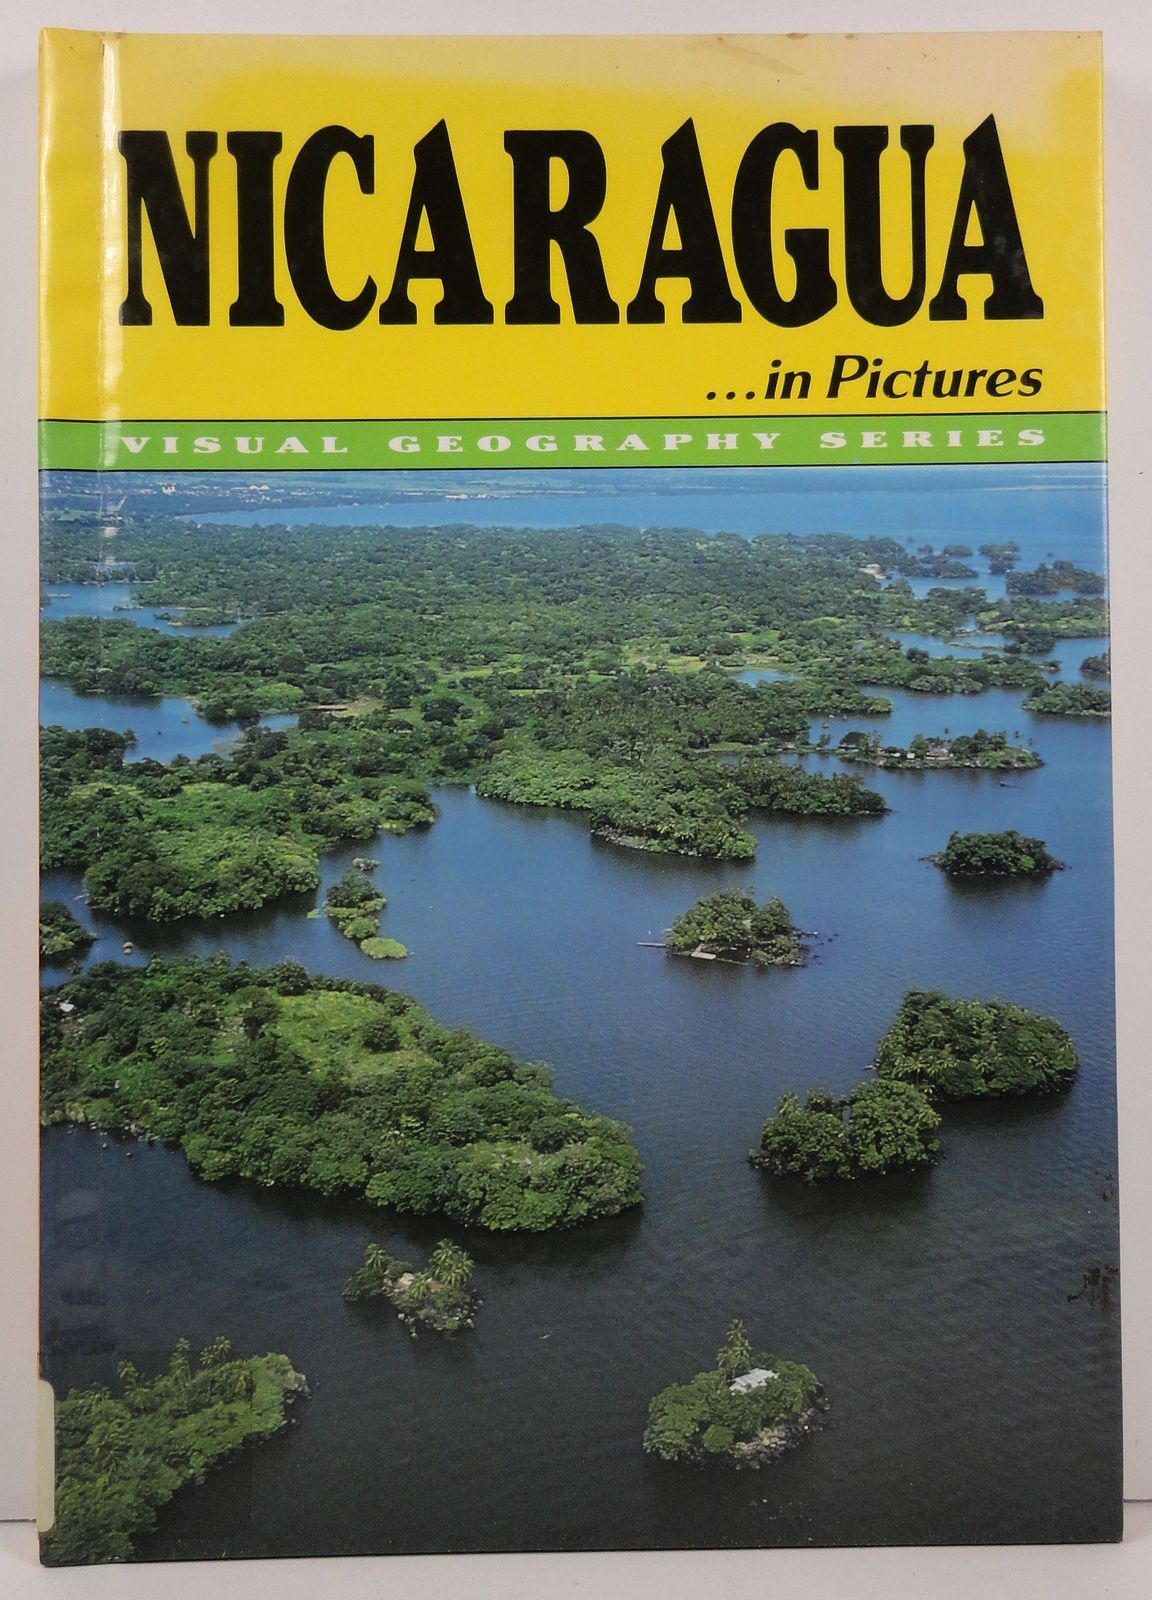 Nicaragua in Pictures Nathan A. Haverstock Visual Geography